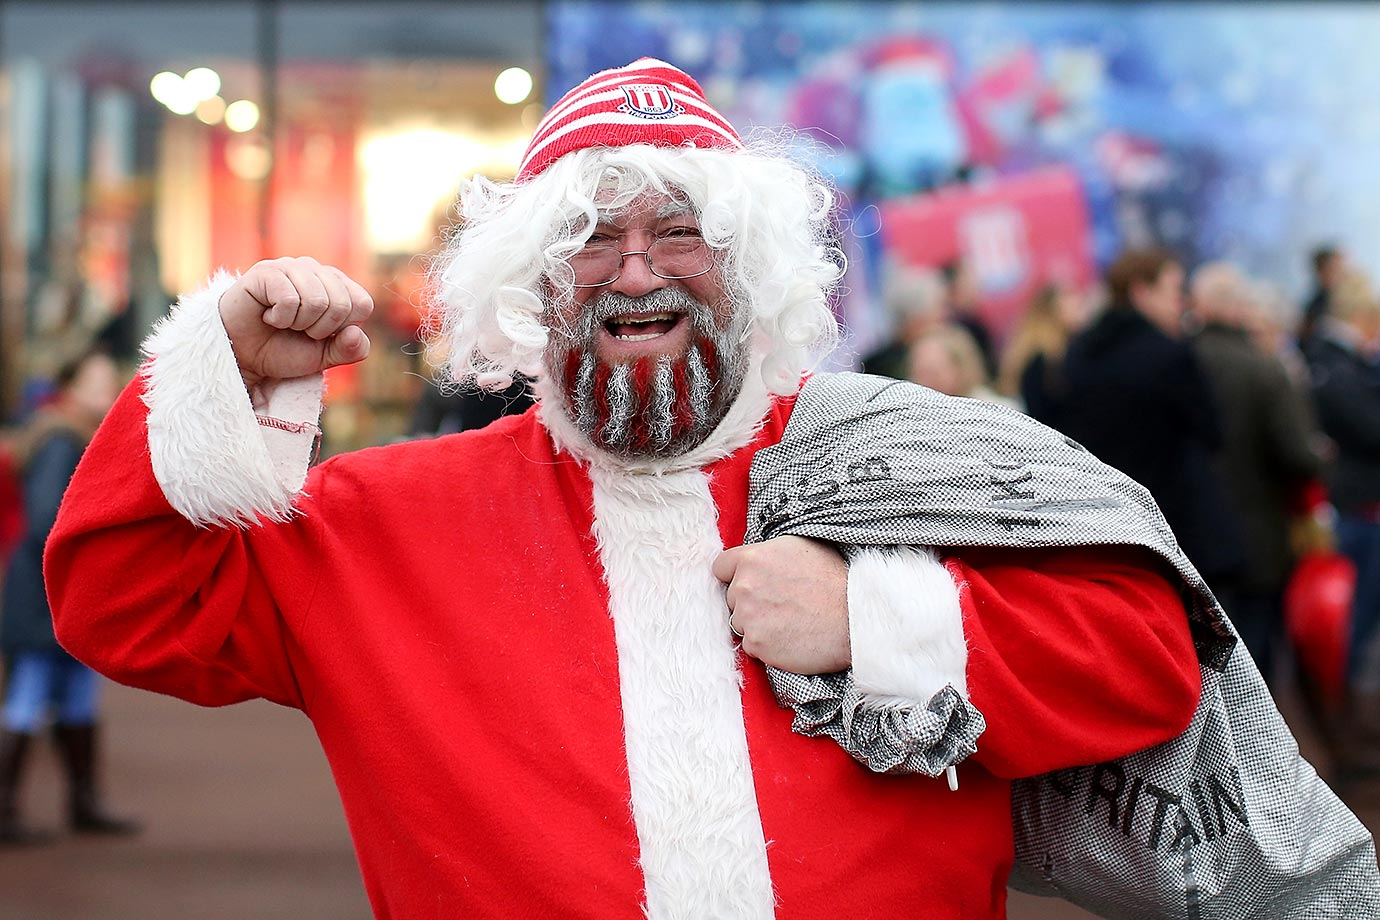 Santa at the Barclays Premier League match between Stoke City and Crystal Palace at Britannia Stadium.